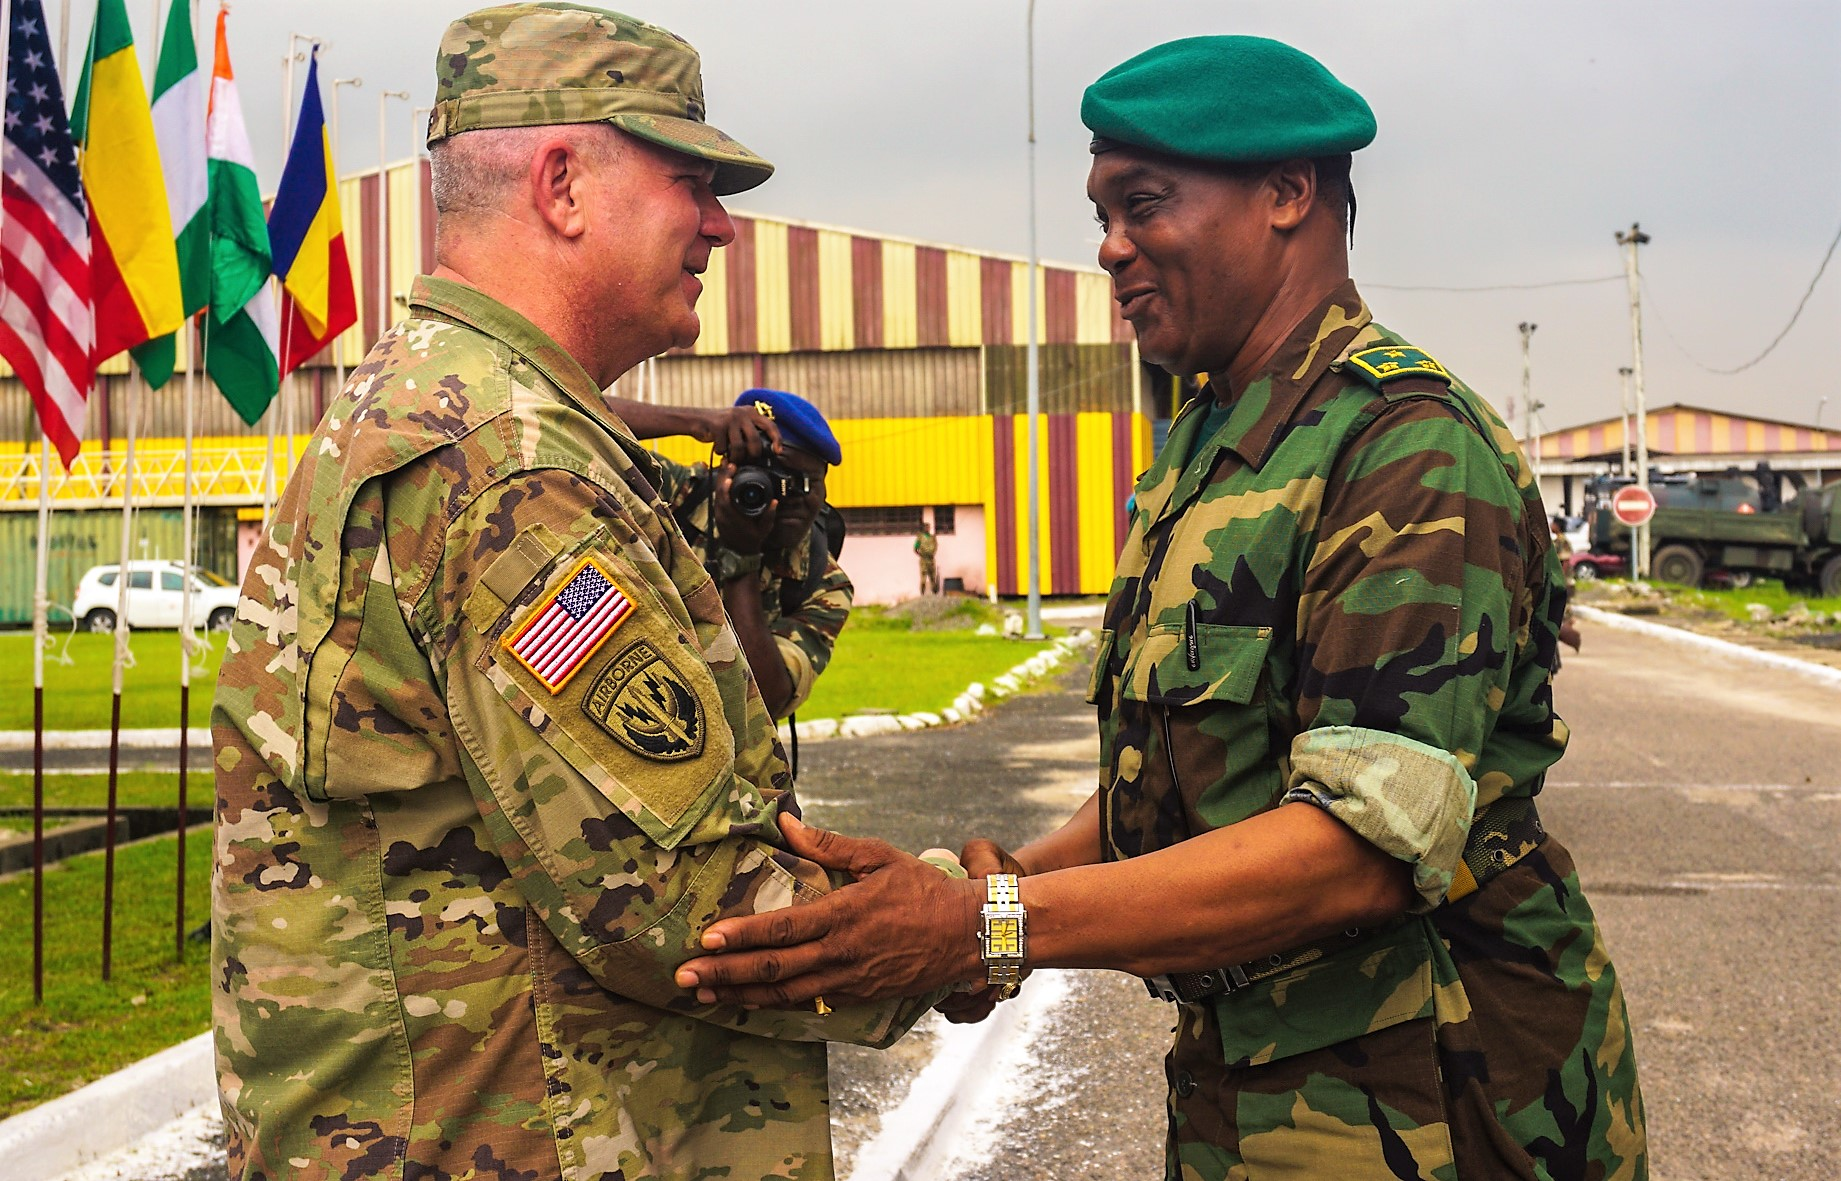 U.S. Army Brig. Gen. Kenneth Moore, U.S. Army Africa deputy commander, greets Cameroonian Maj. Gen. Saly Mohamadou, Commander of the 2nd Military Region of Cameroon, at the opening ceremony for exercise Unified Focus 2017, held on the Douala Naval Base, April 24, 2017. UF 17 is a weeklong tabletop exercise that brings the military partners of the Lake Chad Basin area's Multinational Joint Task Force (MNJTF) together to practice joint planning and coordination through a series of scripted vignettes. (Photo by Capt. Jason Welch, U.S. Army Africa Public Affairs/Released)